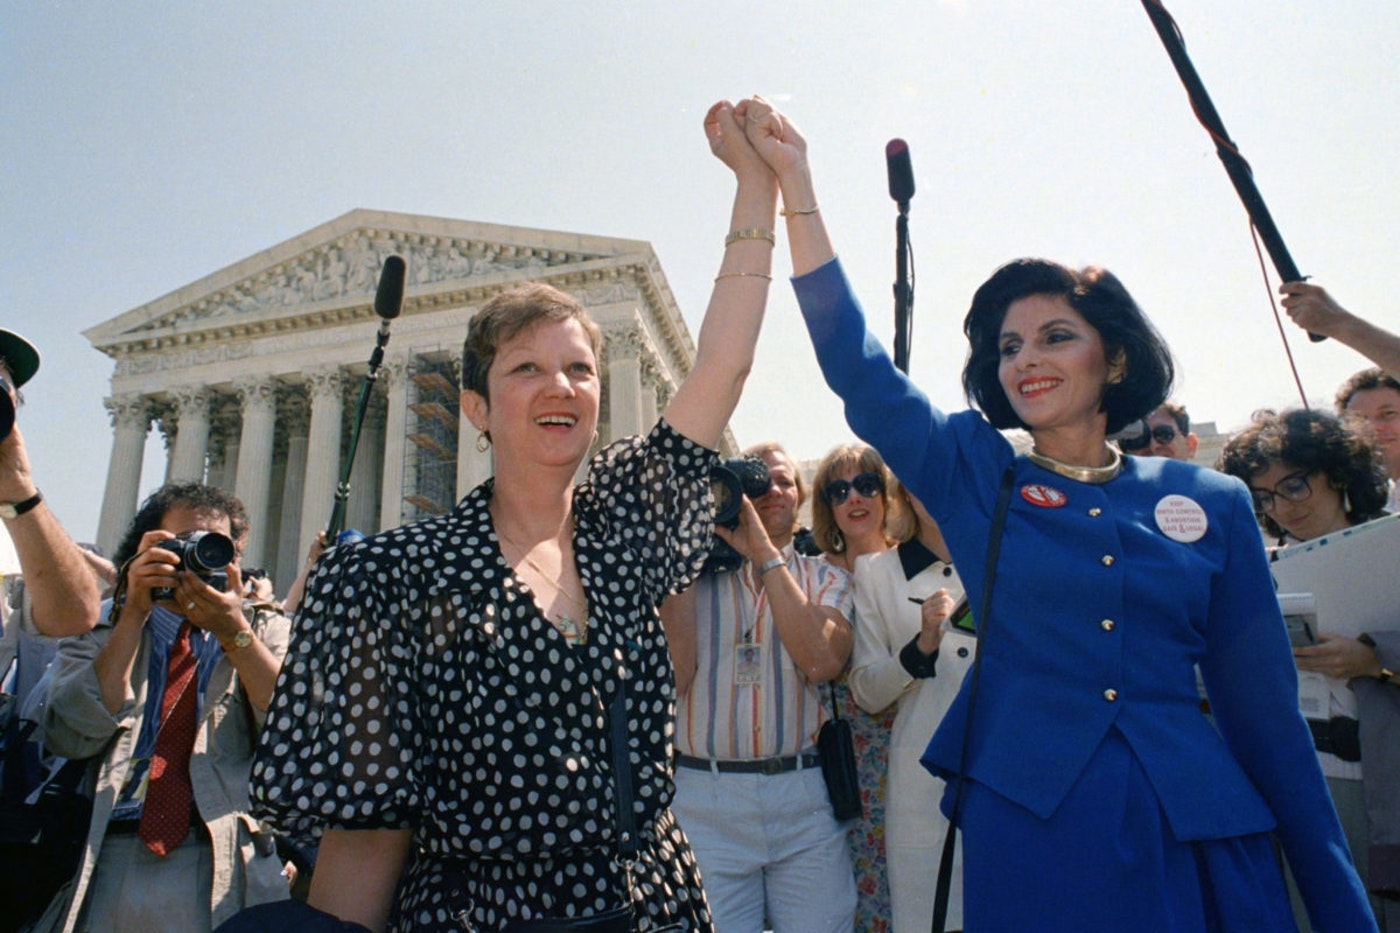 """FILE - In this April 26, 1989 file photo, Norma McCorvey, Jane Roe in the 1973 court case, left, and her attorney Gloria Allred hold hands as they leave the Supreme Court building in Washington after sitting in while the court listened to arguments in a Missouri abortion case. Three years after her death of heart failure at age 69, the woman better known as """"Jane Roe"""" is making headlines again. In a documentary being released Friday, Norma McCorvey tells the audience that her support for the anti-abortion cause was an act all along. The documentary """"AKA Jane Roe"""" premieres Friday on FX.  (AP Photo/J. Scott Applewhite, File)"""